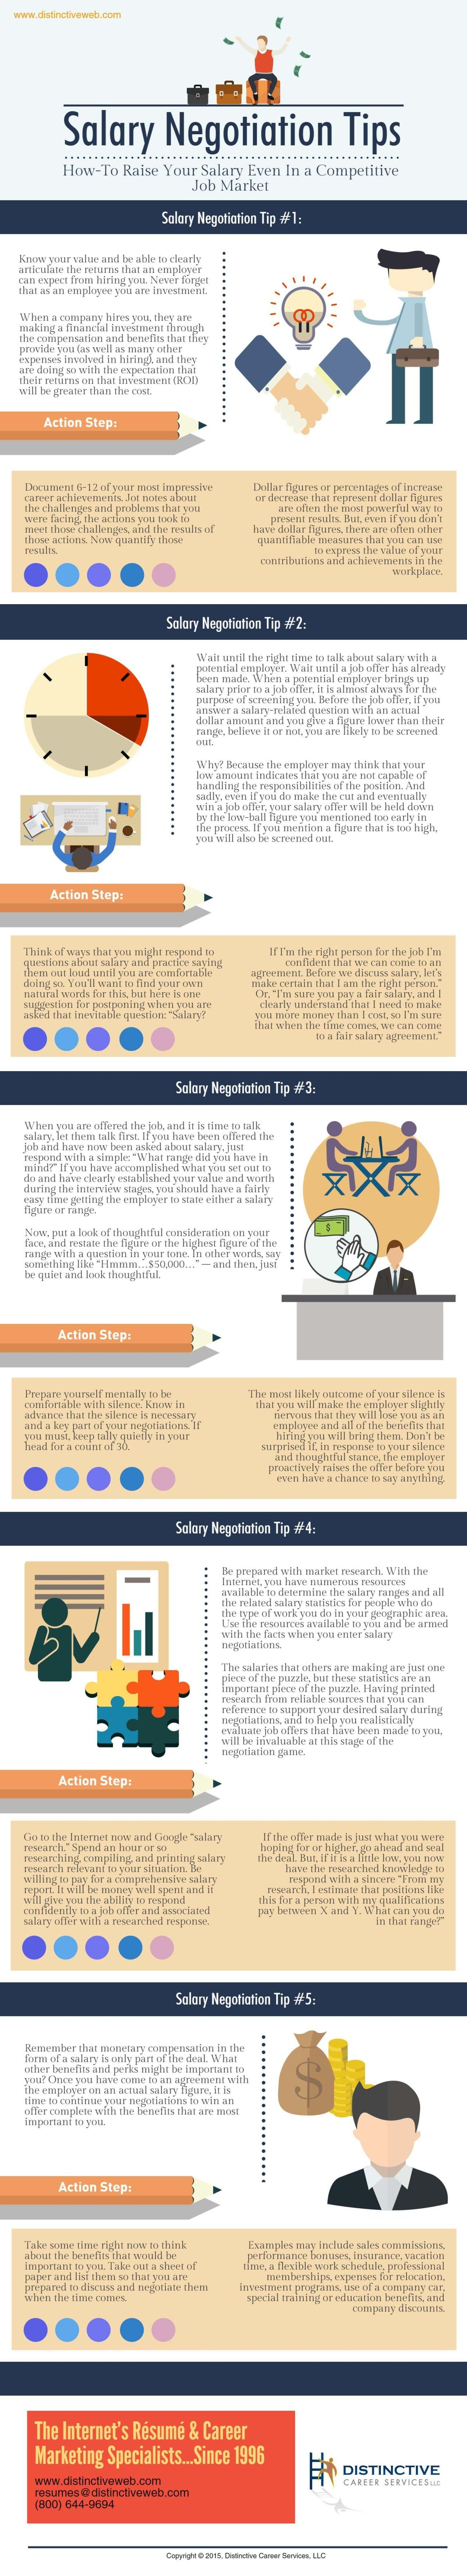 5 salary negotiation tips and action steps infographic